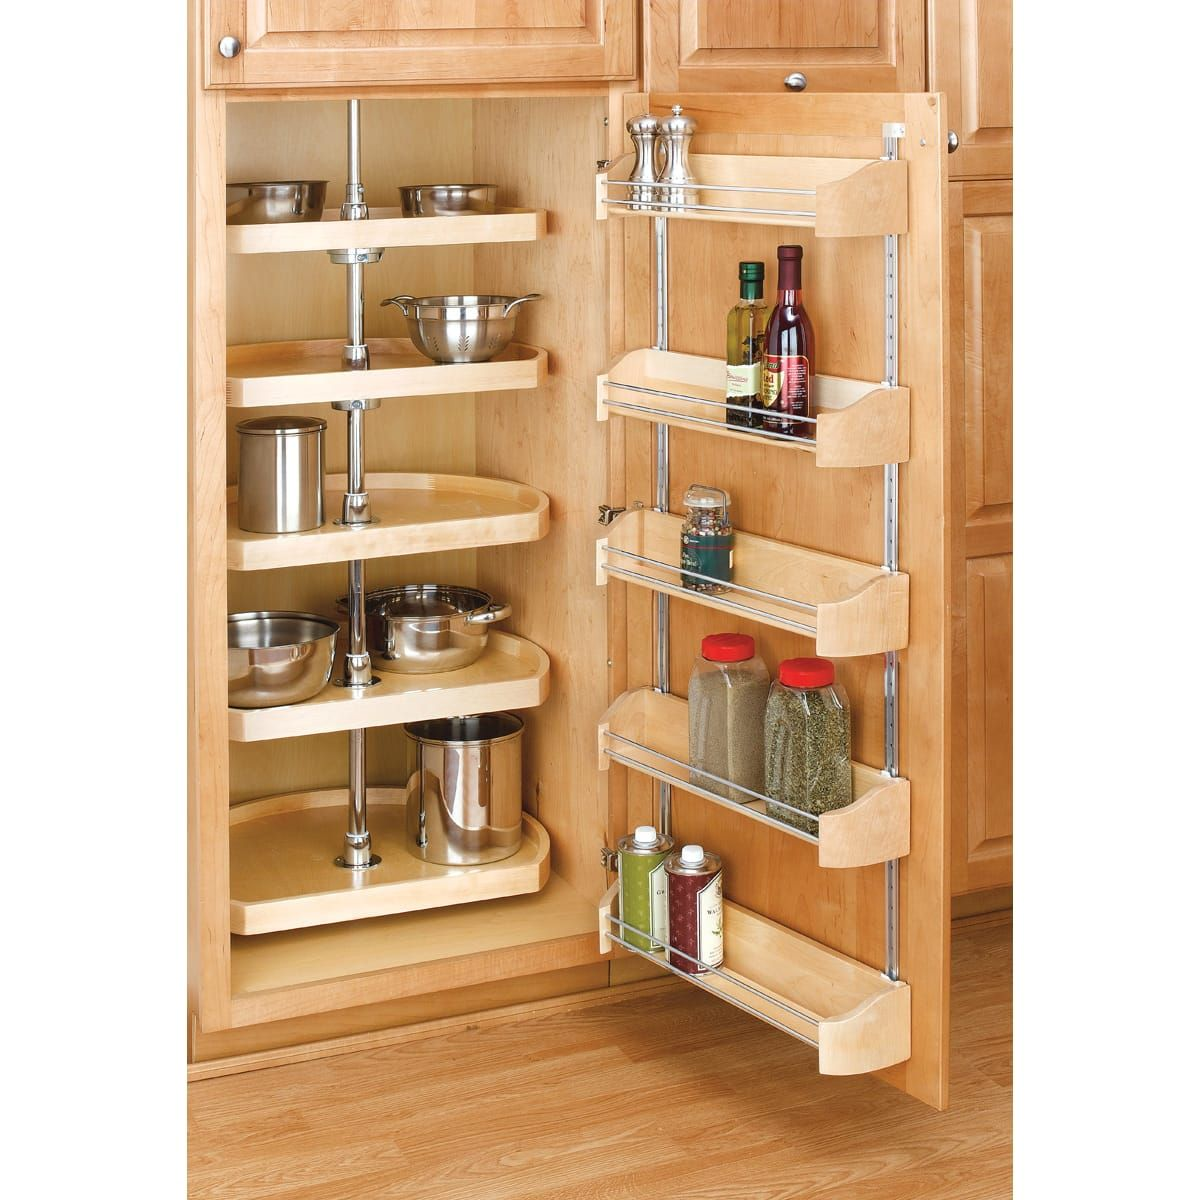 Rev A Shelf 4265 20 50 Build Com In 2020 Kitchen Cabinet Storage Apartment Kitchen Kitchen Storage